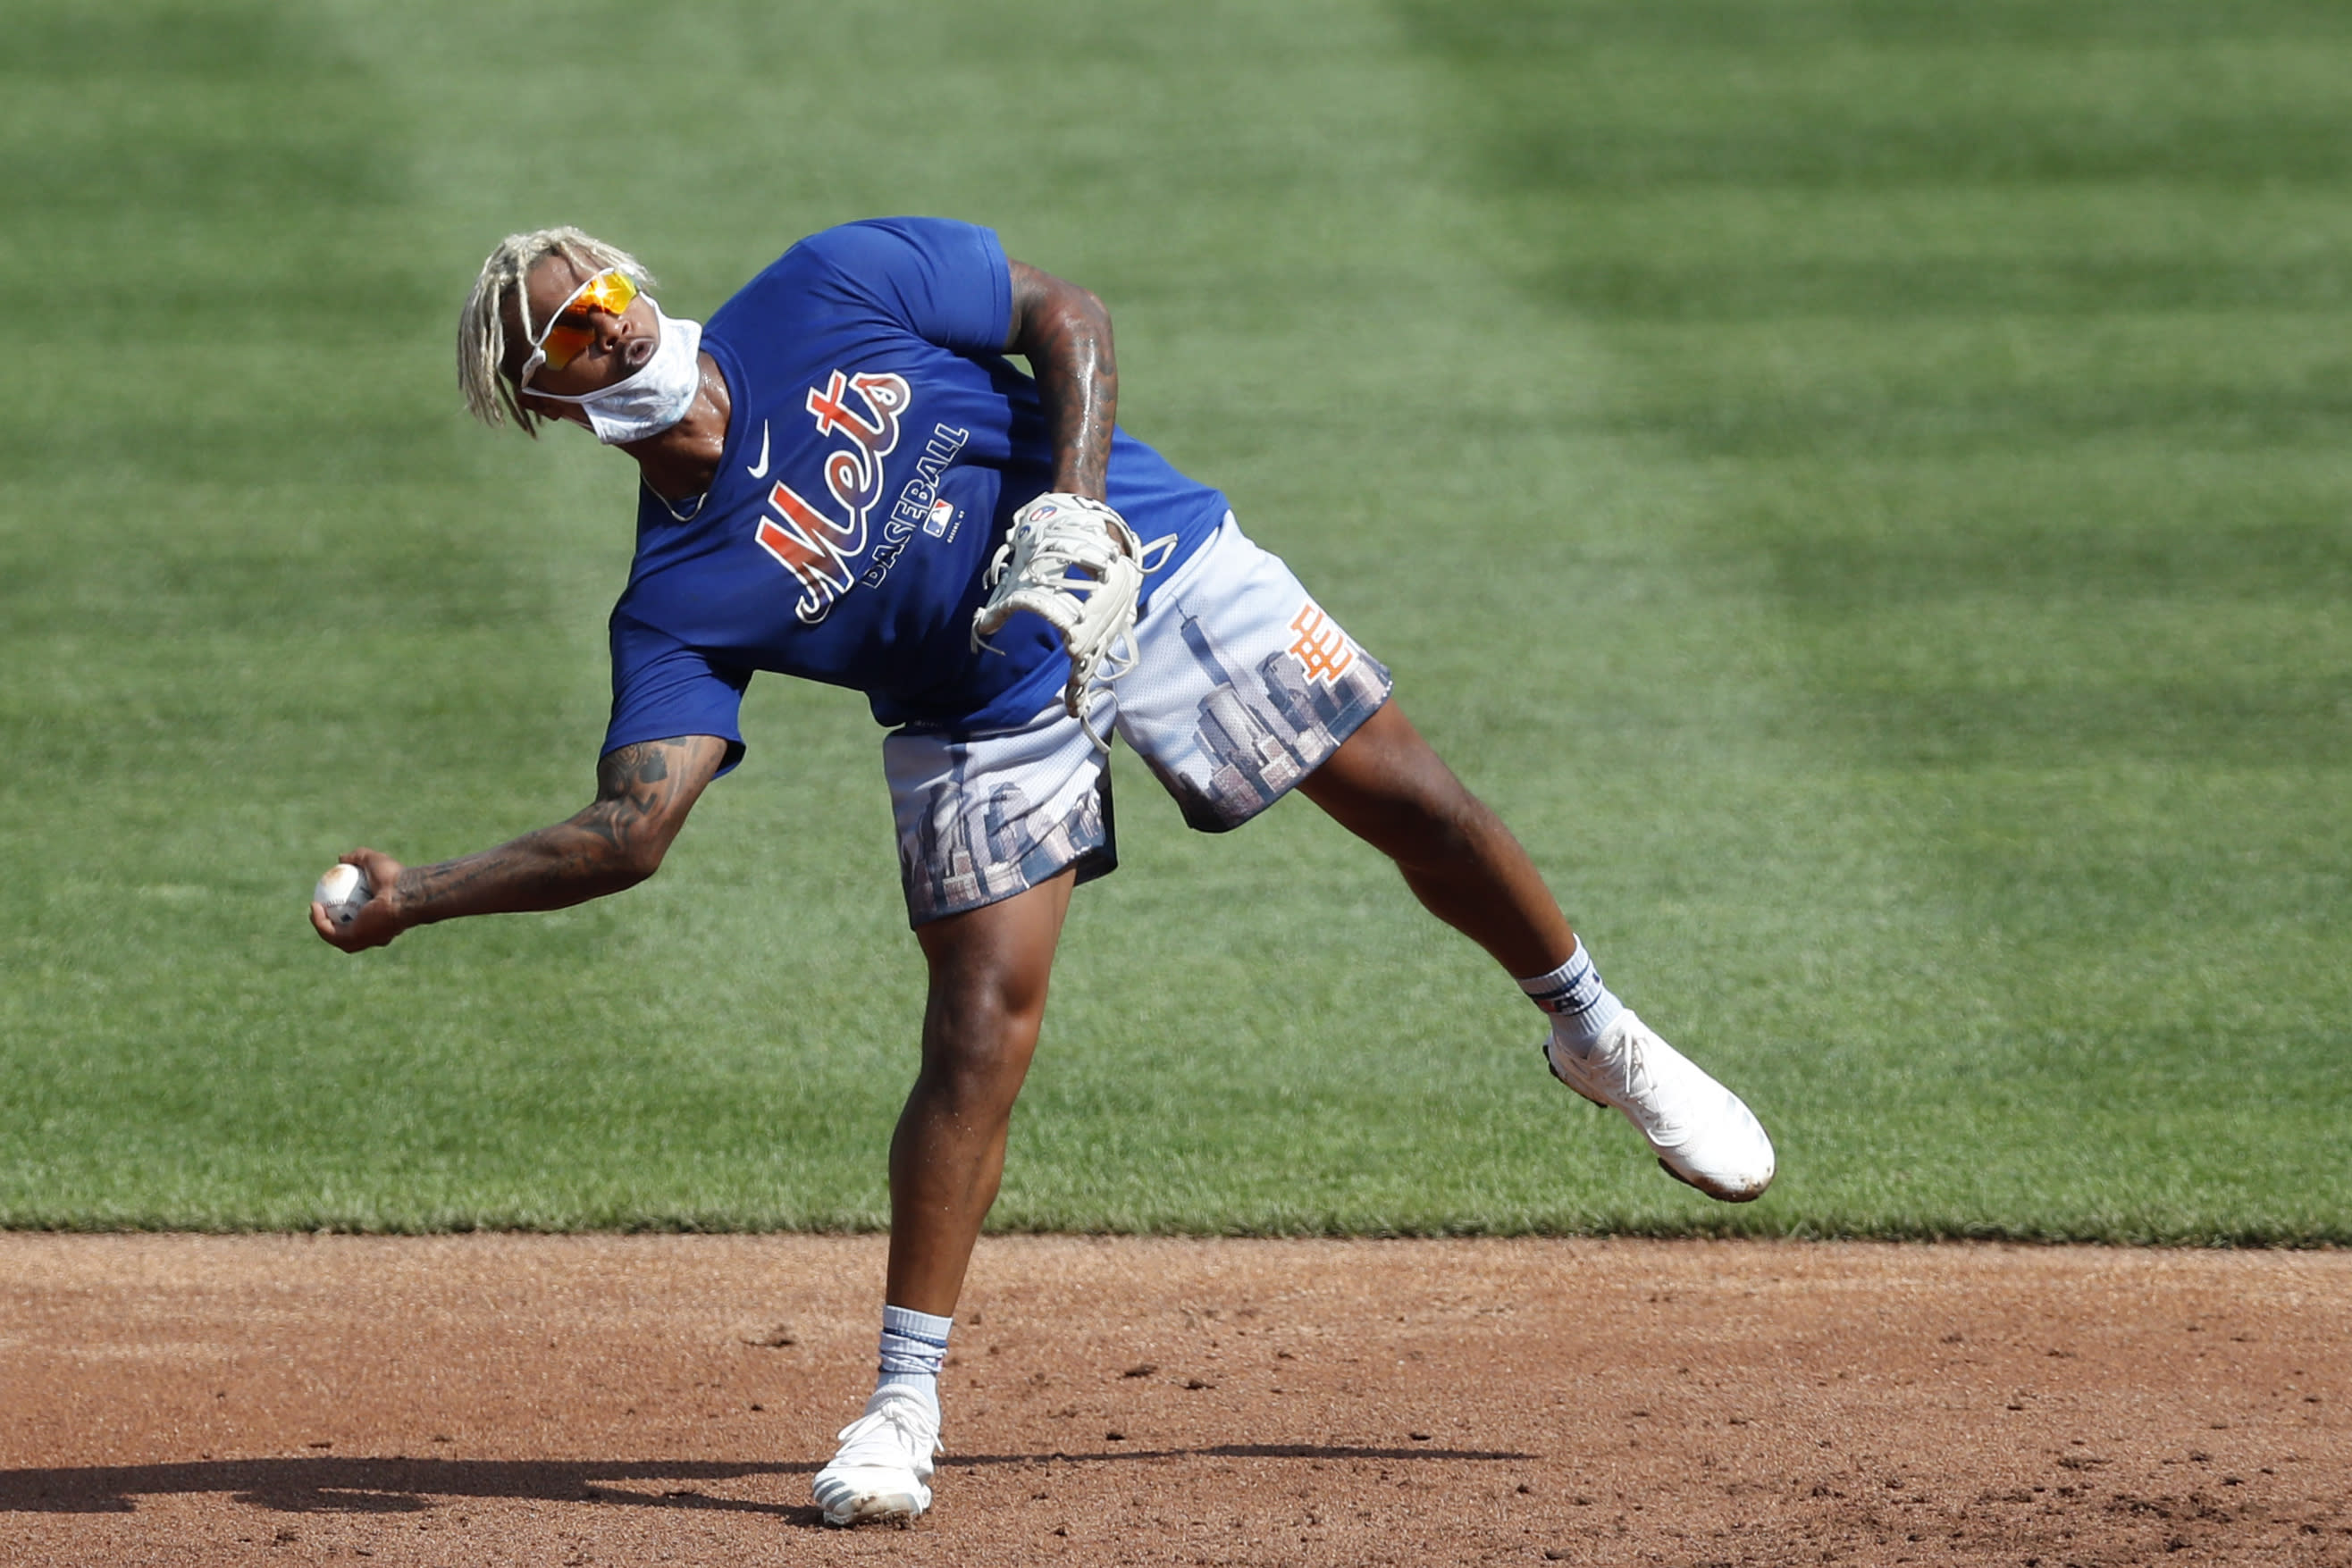 New York Mets starting pitcher Marcus Stroman throws from one leg during fielding drills at a summer baseball training camp workout at CitiField, Thursday, July 9, 2020, in New York. (AP Photo/Kathy Willens)